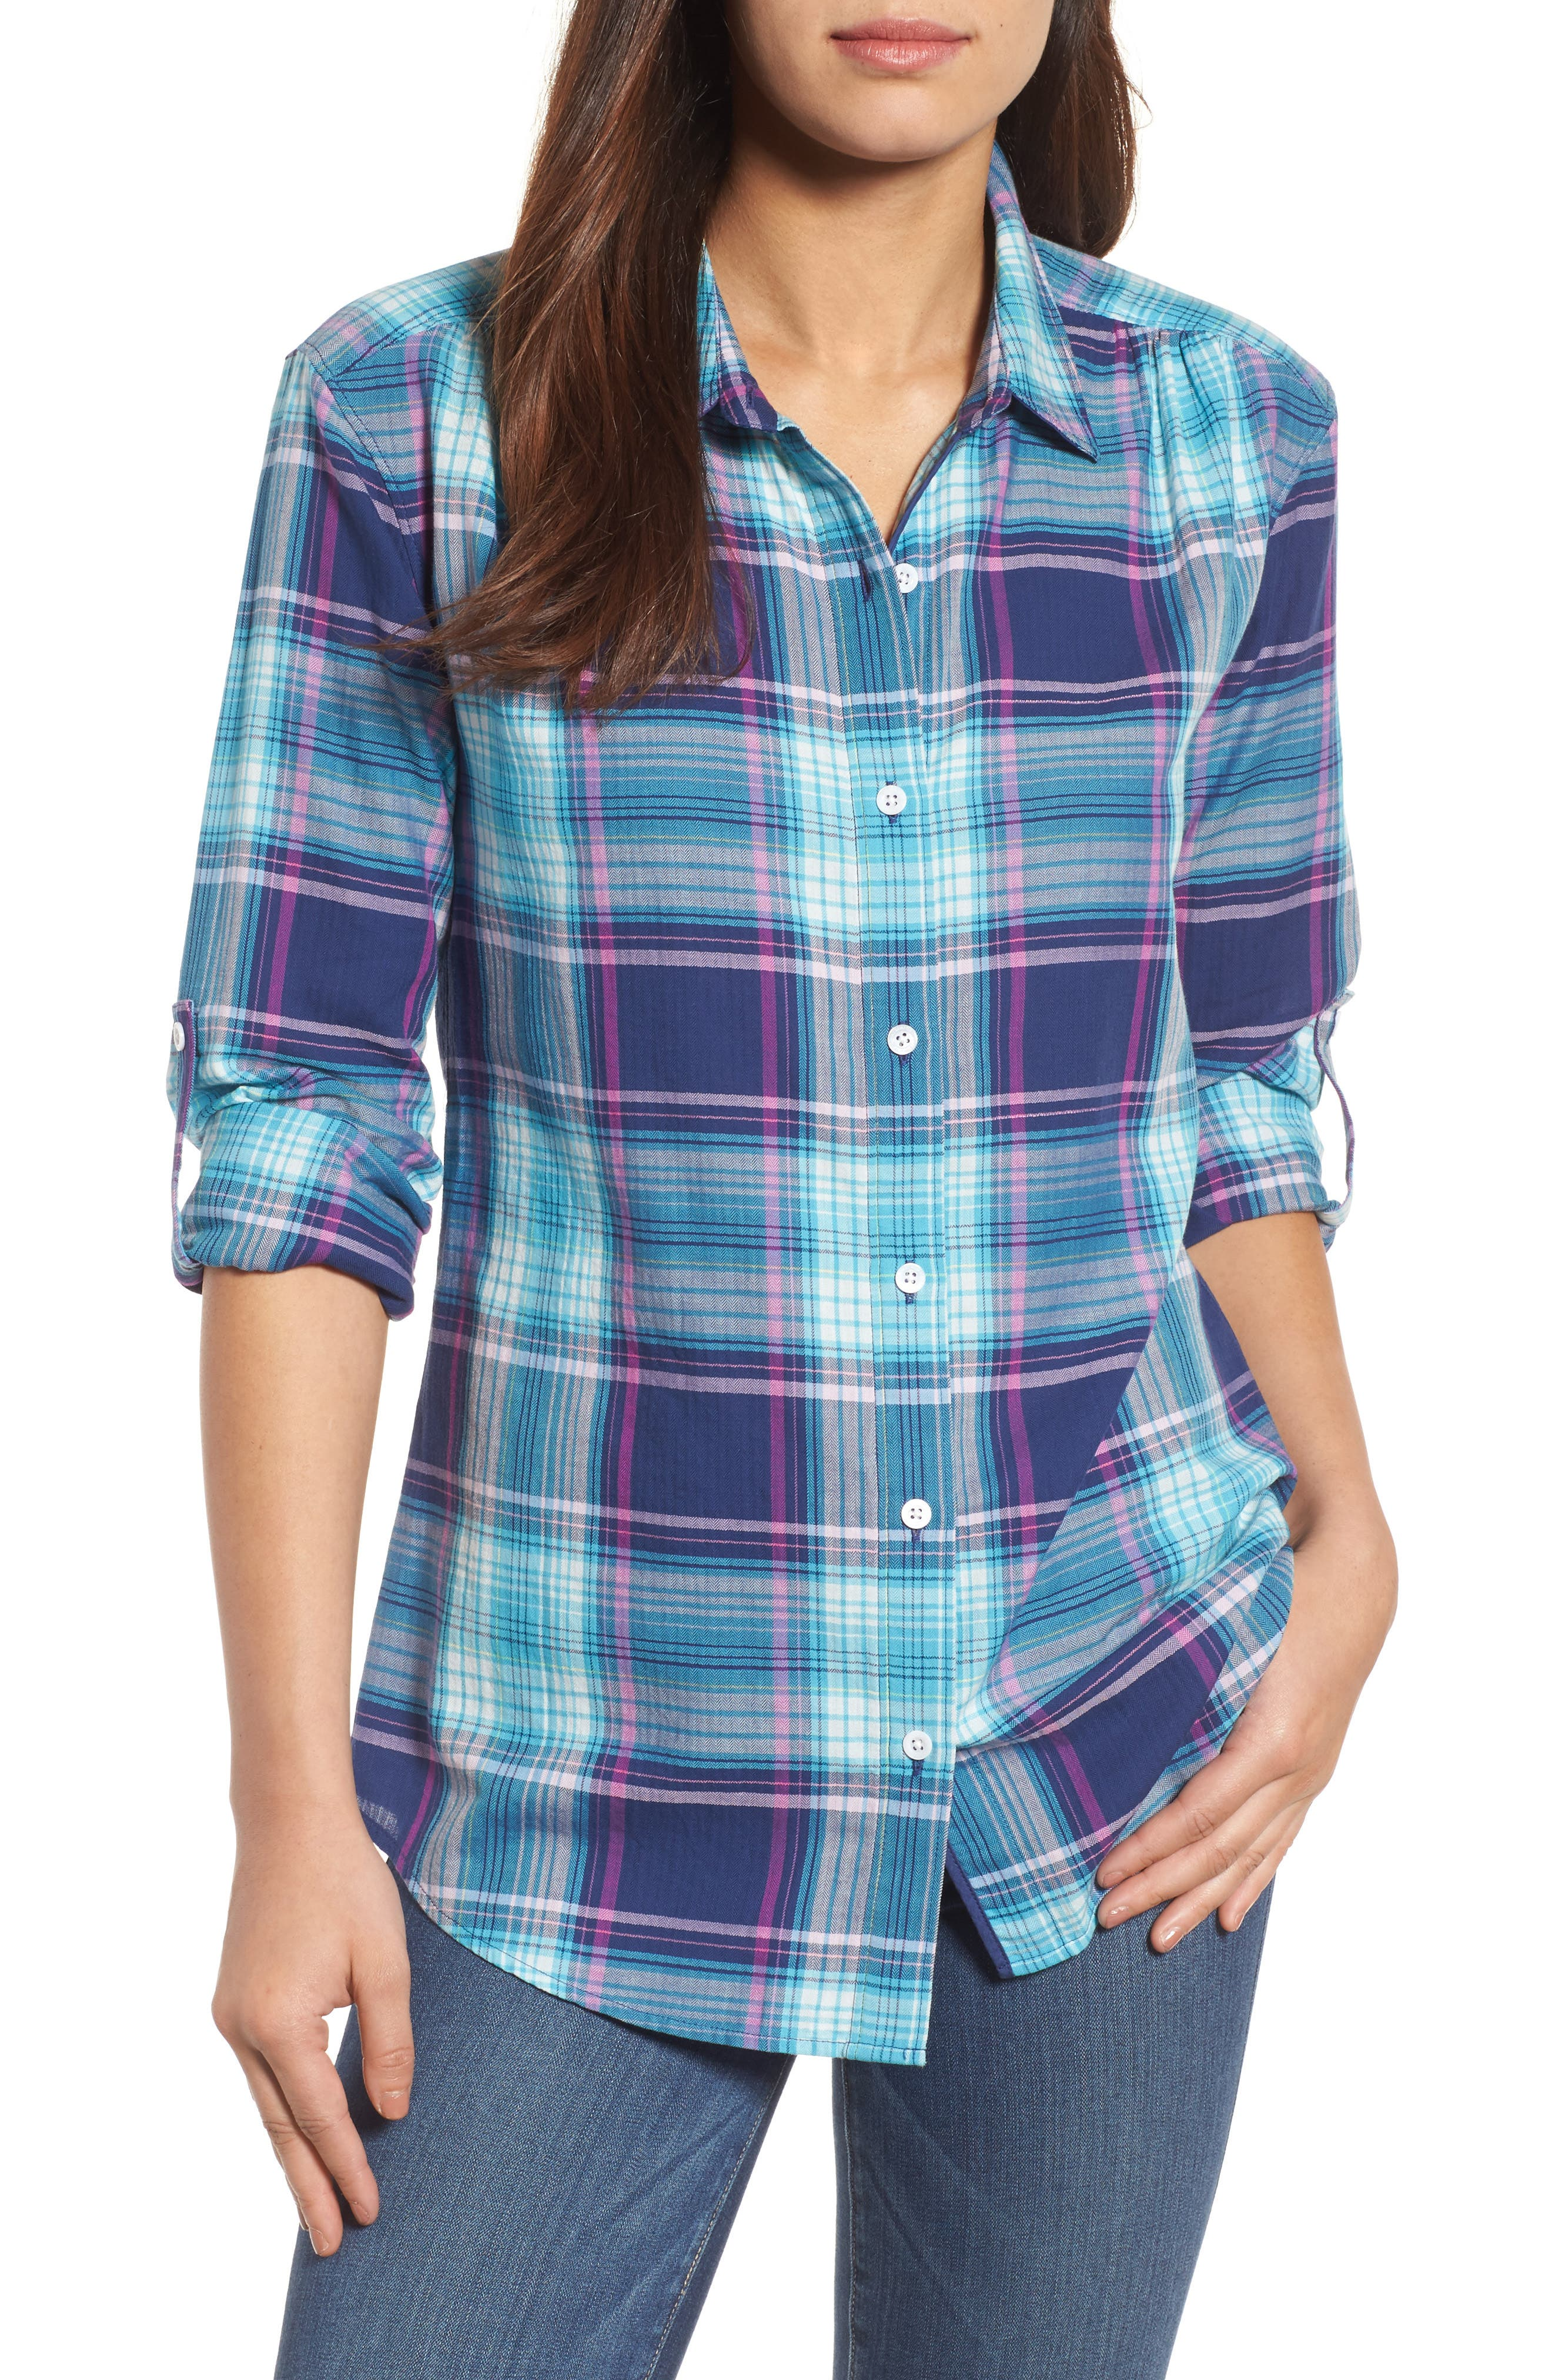 Alternate Image 1 Selected - Tommy Bahama Play it Again Plaid Long Sleeve Shirt